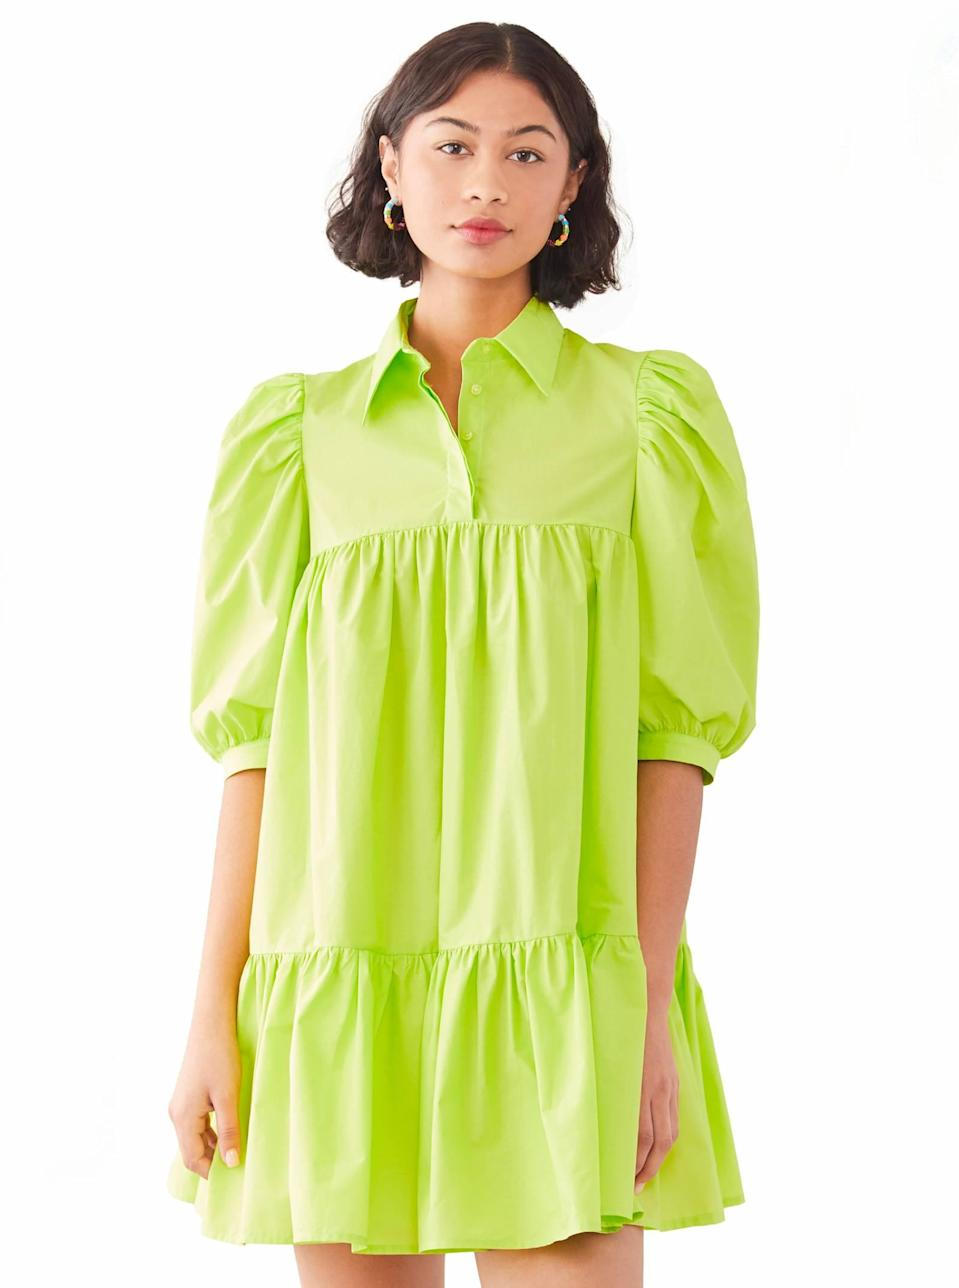 """Nothing like a little lime green to infuse your wardrobe with a dose of vitality. Pair this breezy mini dress with strappy block heels for a no-fail late lunch look. $295, Shopbop. <a href=""""https://www.shopbop.com/short-sleeve-puff-shirt-dress/vp/v=1/1591629824.htm?"""" rel=""""nofollow noopener"""" target=""""_blank"""" data-ylk=""""slk:Get it now!"""" class=""""link rapid-noclick-resp"""">Get it now!</a>"""